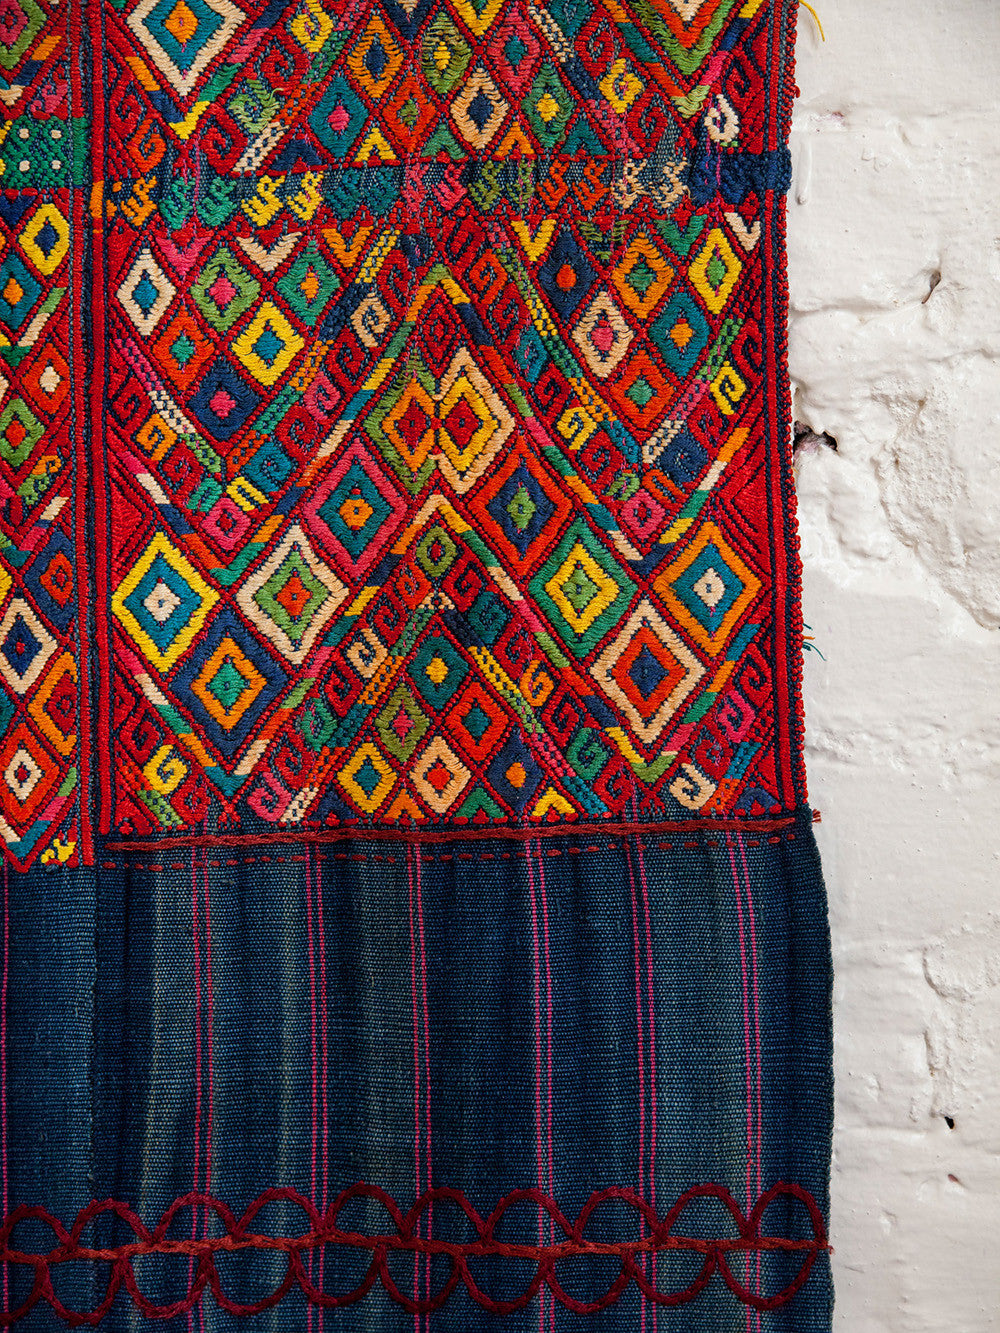 Antique Wall Tapestry Hanging Guatemala